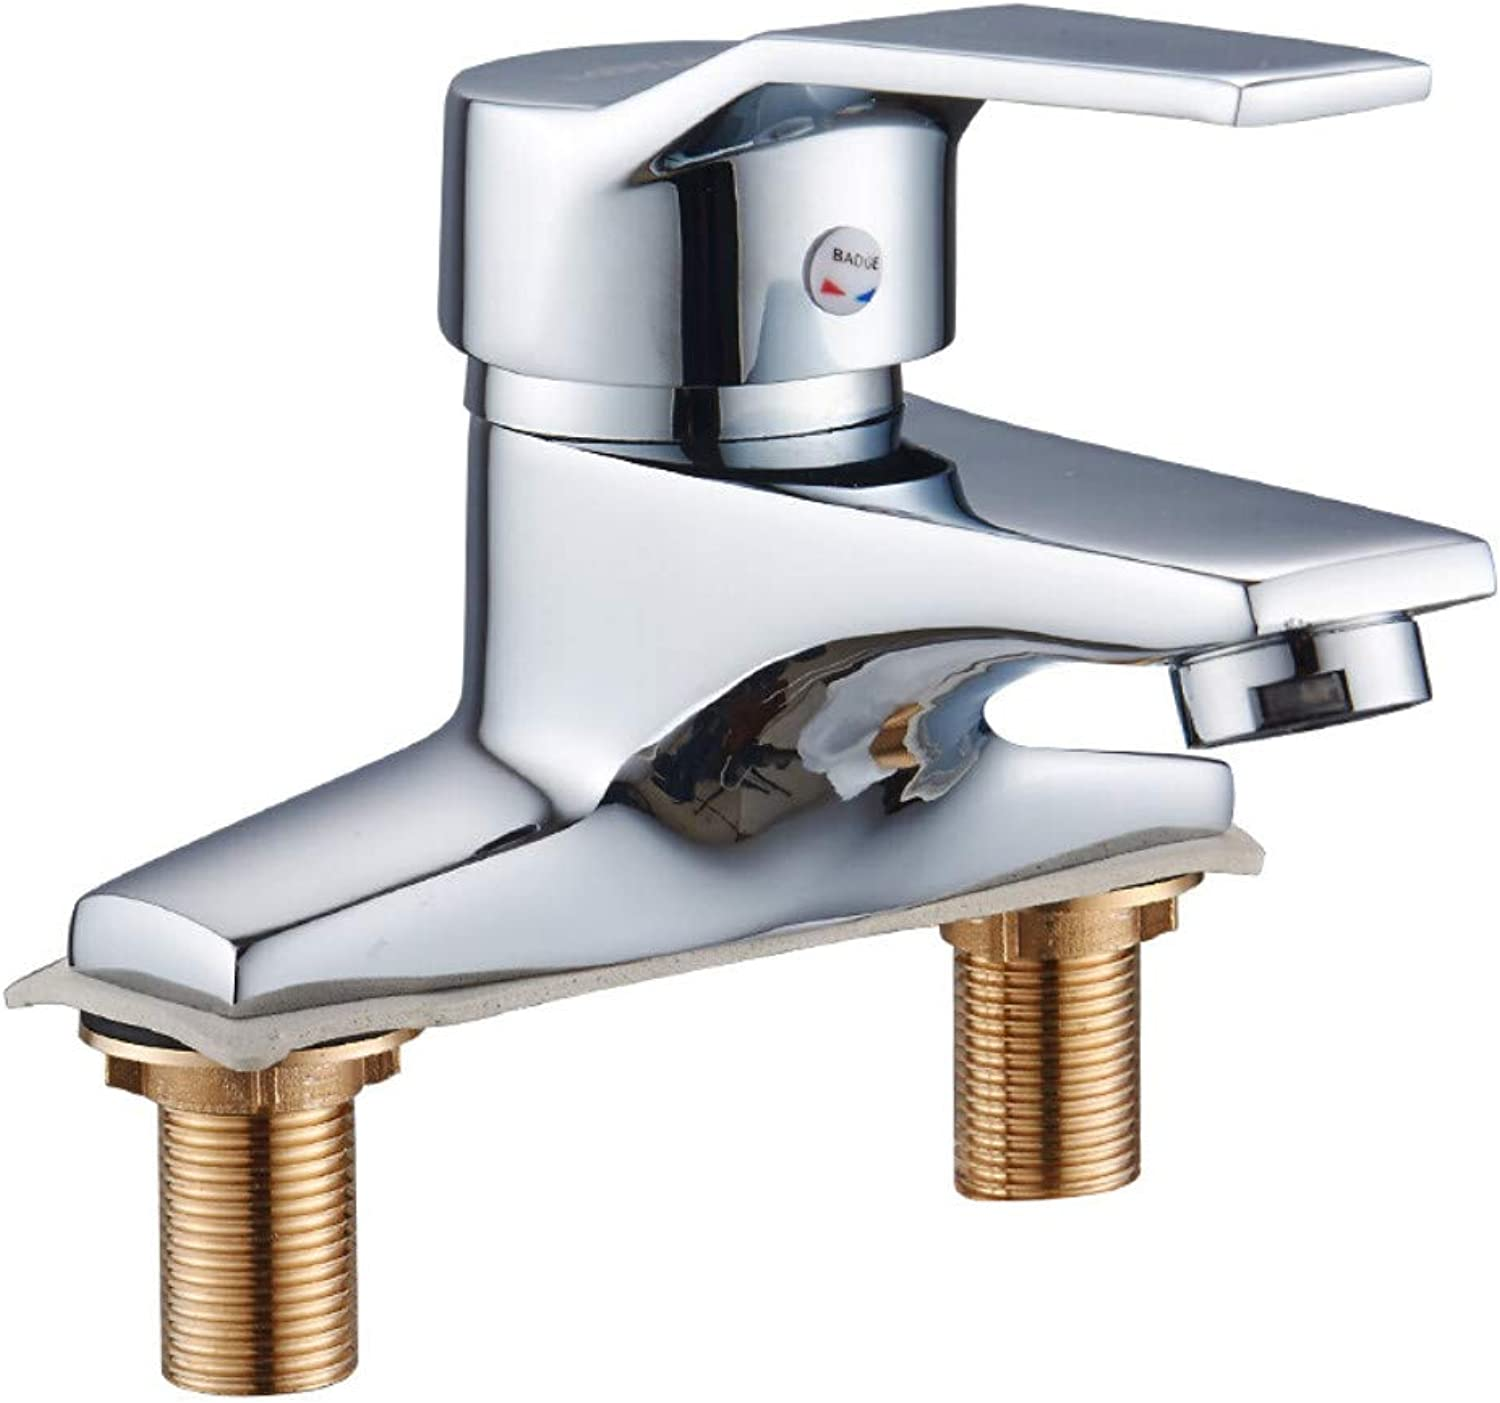 Kitchen Sink Tapbathroom Sink Tap bathroom Hardware Main Copper Faucet Basin Basin Hot And Cold Double Faucet Double Hole Square Faucet